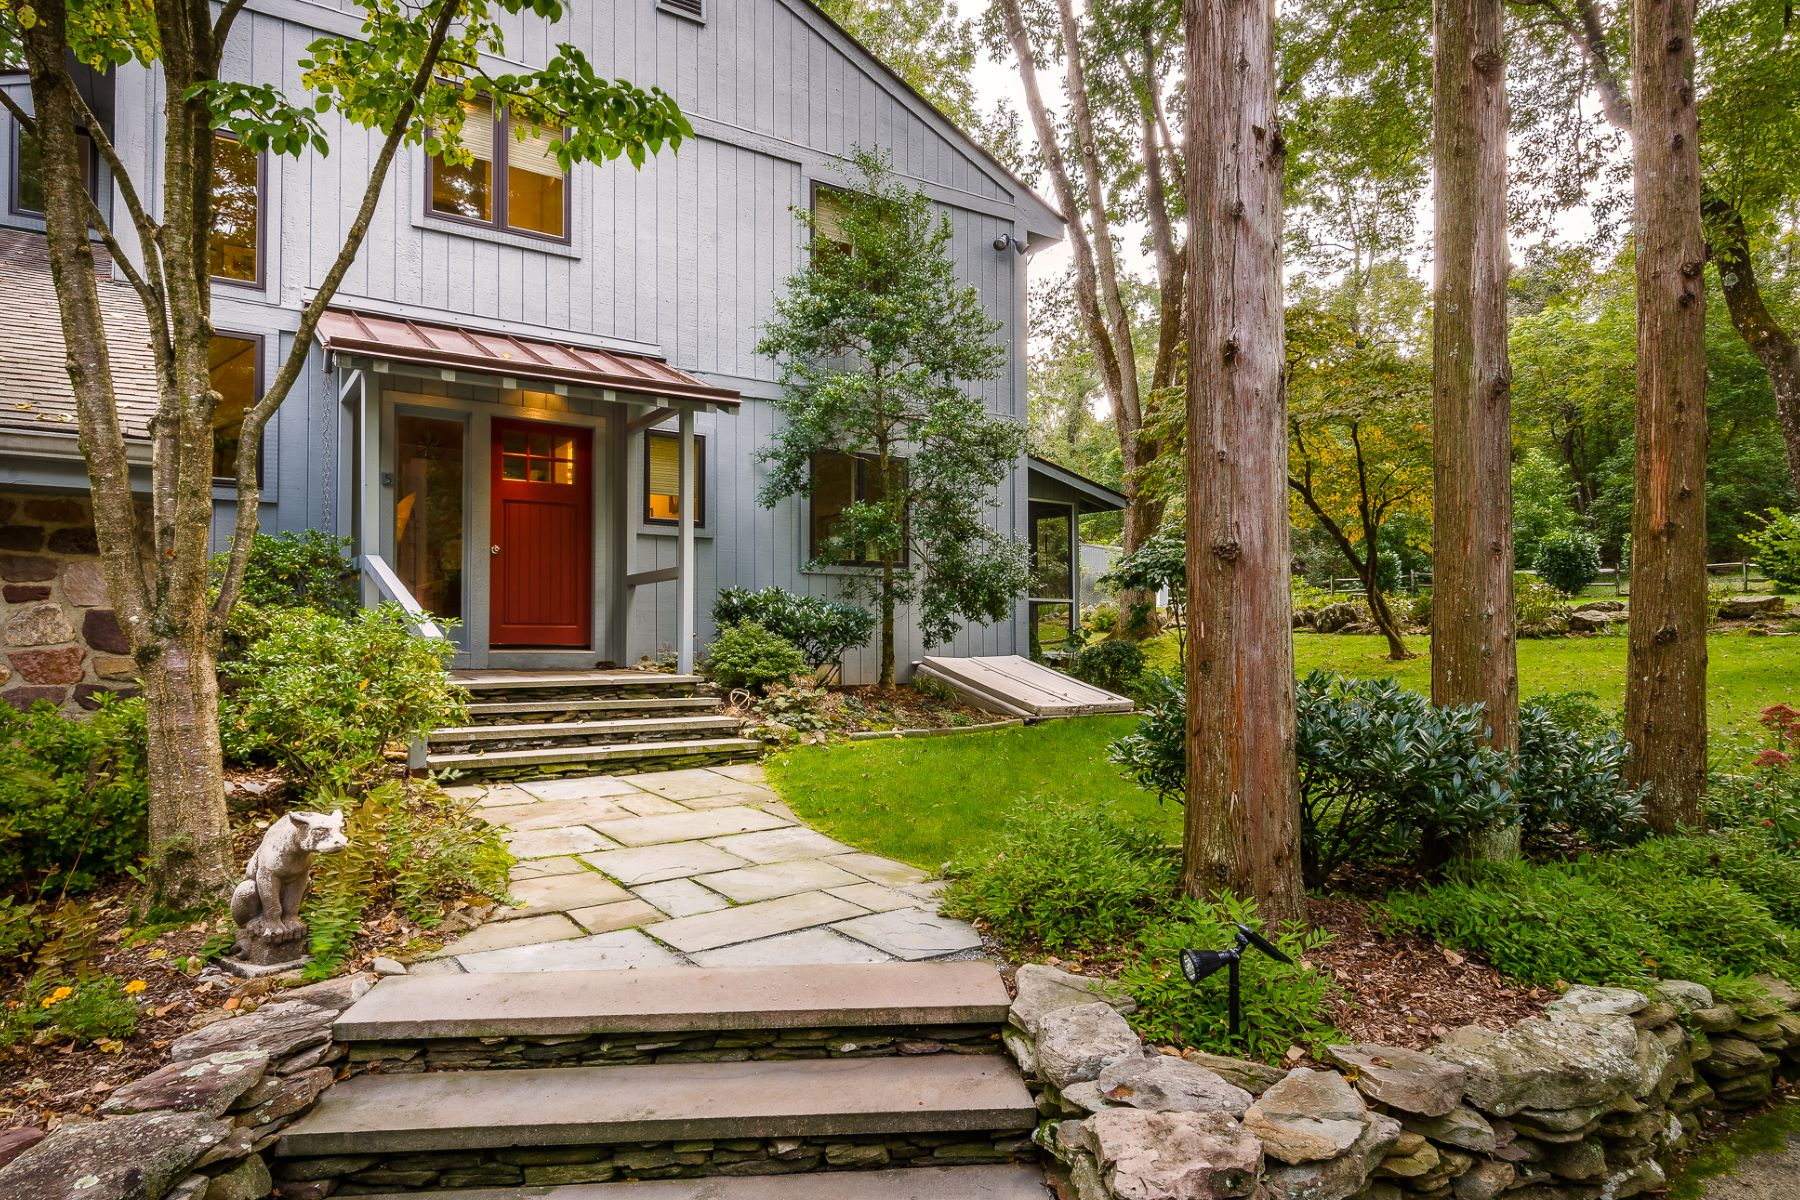 Property for Sale at Craftsman Meets Cottage 5 Northfield Court, Lambertville, New Jersey 08530 United States